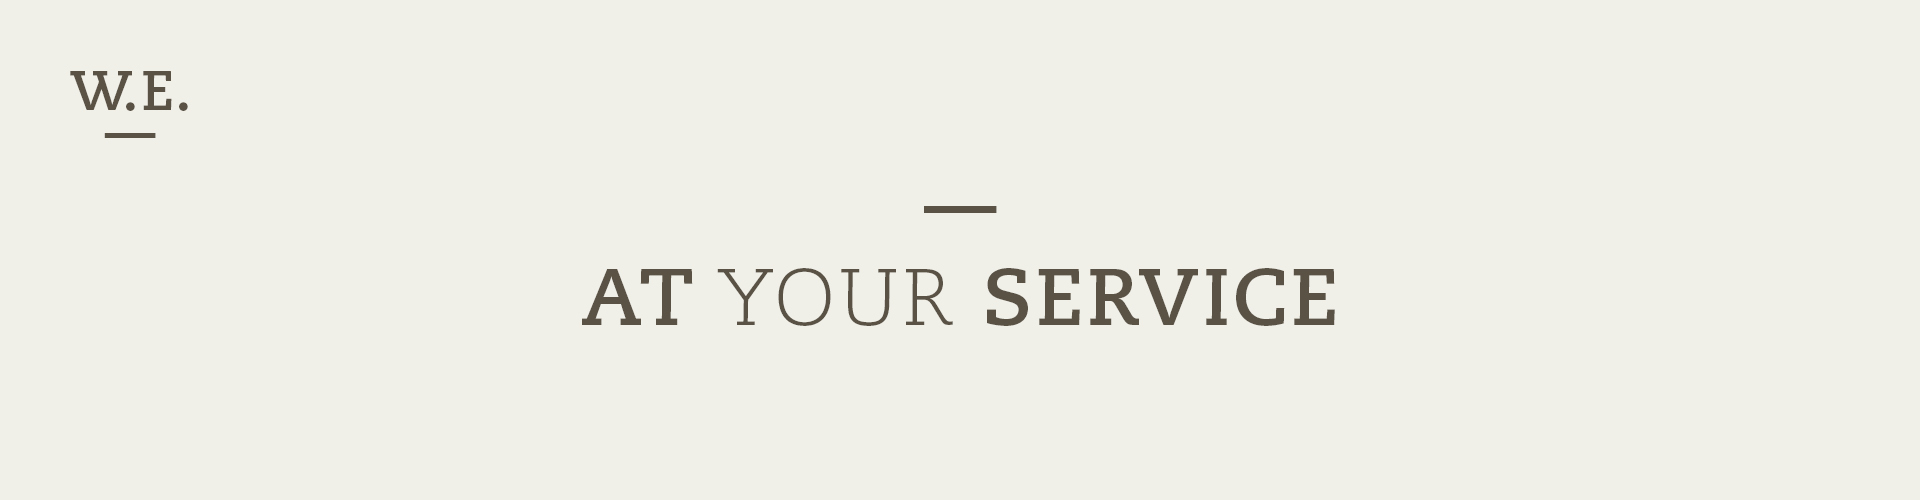 WE_atyourservice_schmal